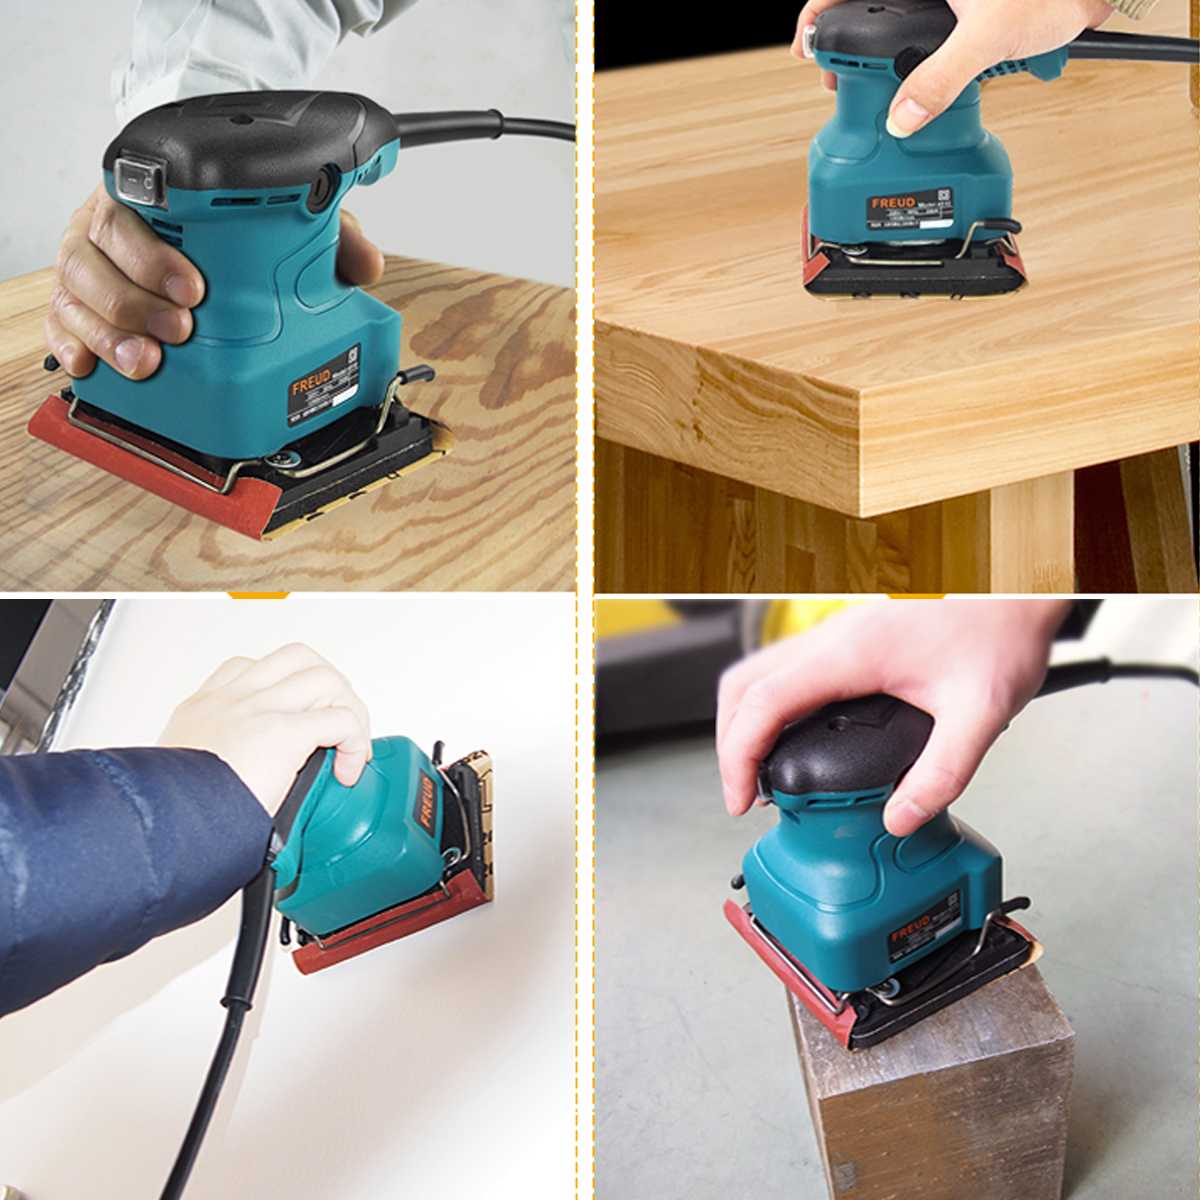 200W Electric Orbital <font><b>Sander</b></font> Machine Wood Polisher Mechanical Furniture Wall Metal Polisher Grinding Machine with Sandpapers image